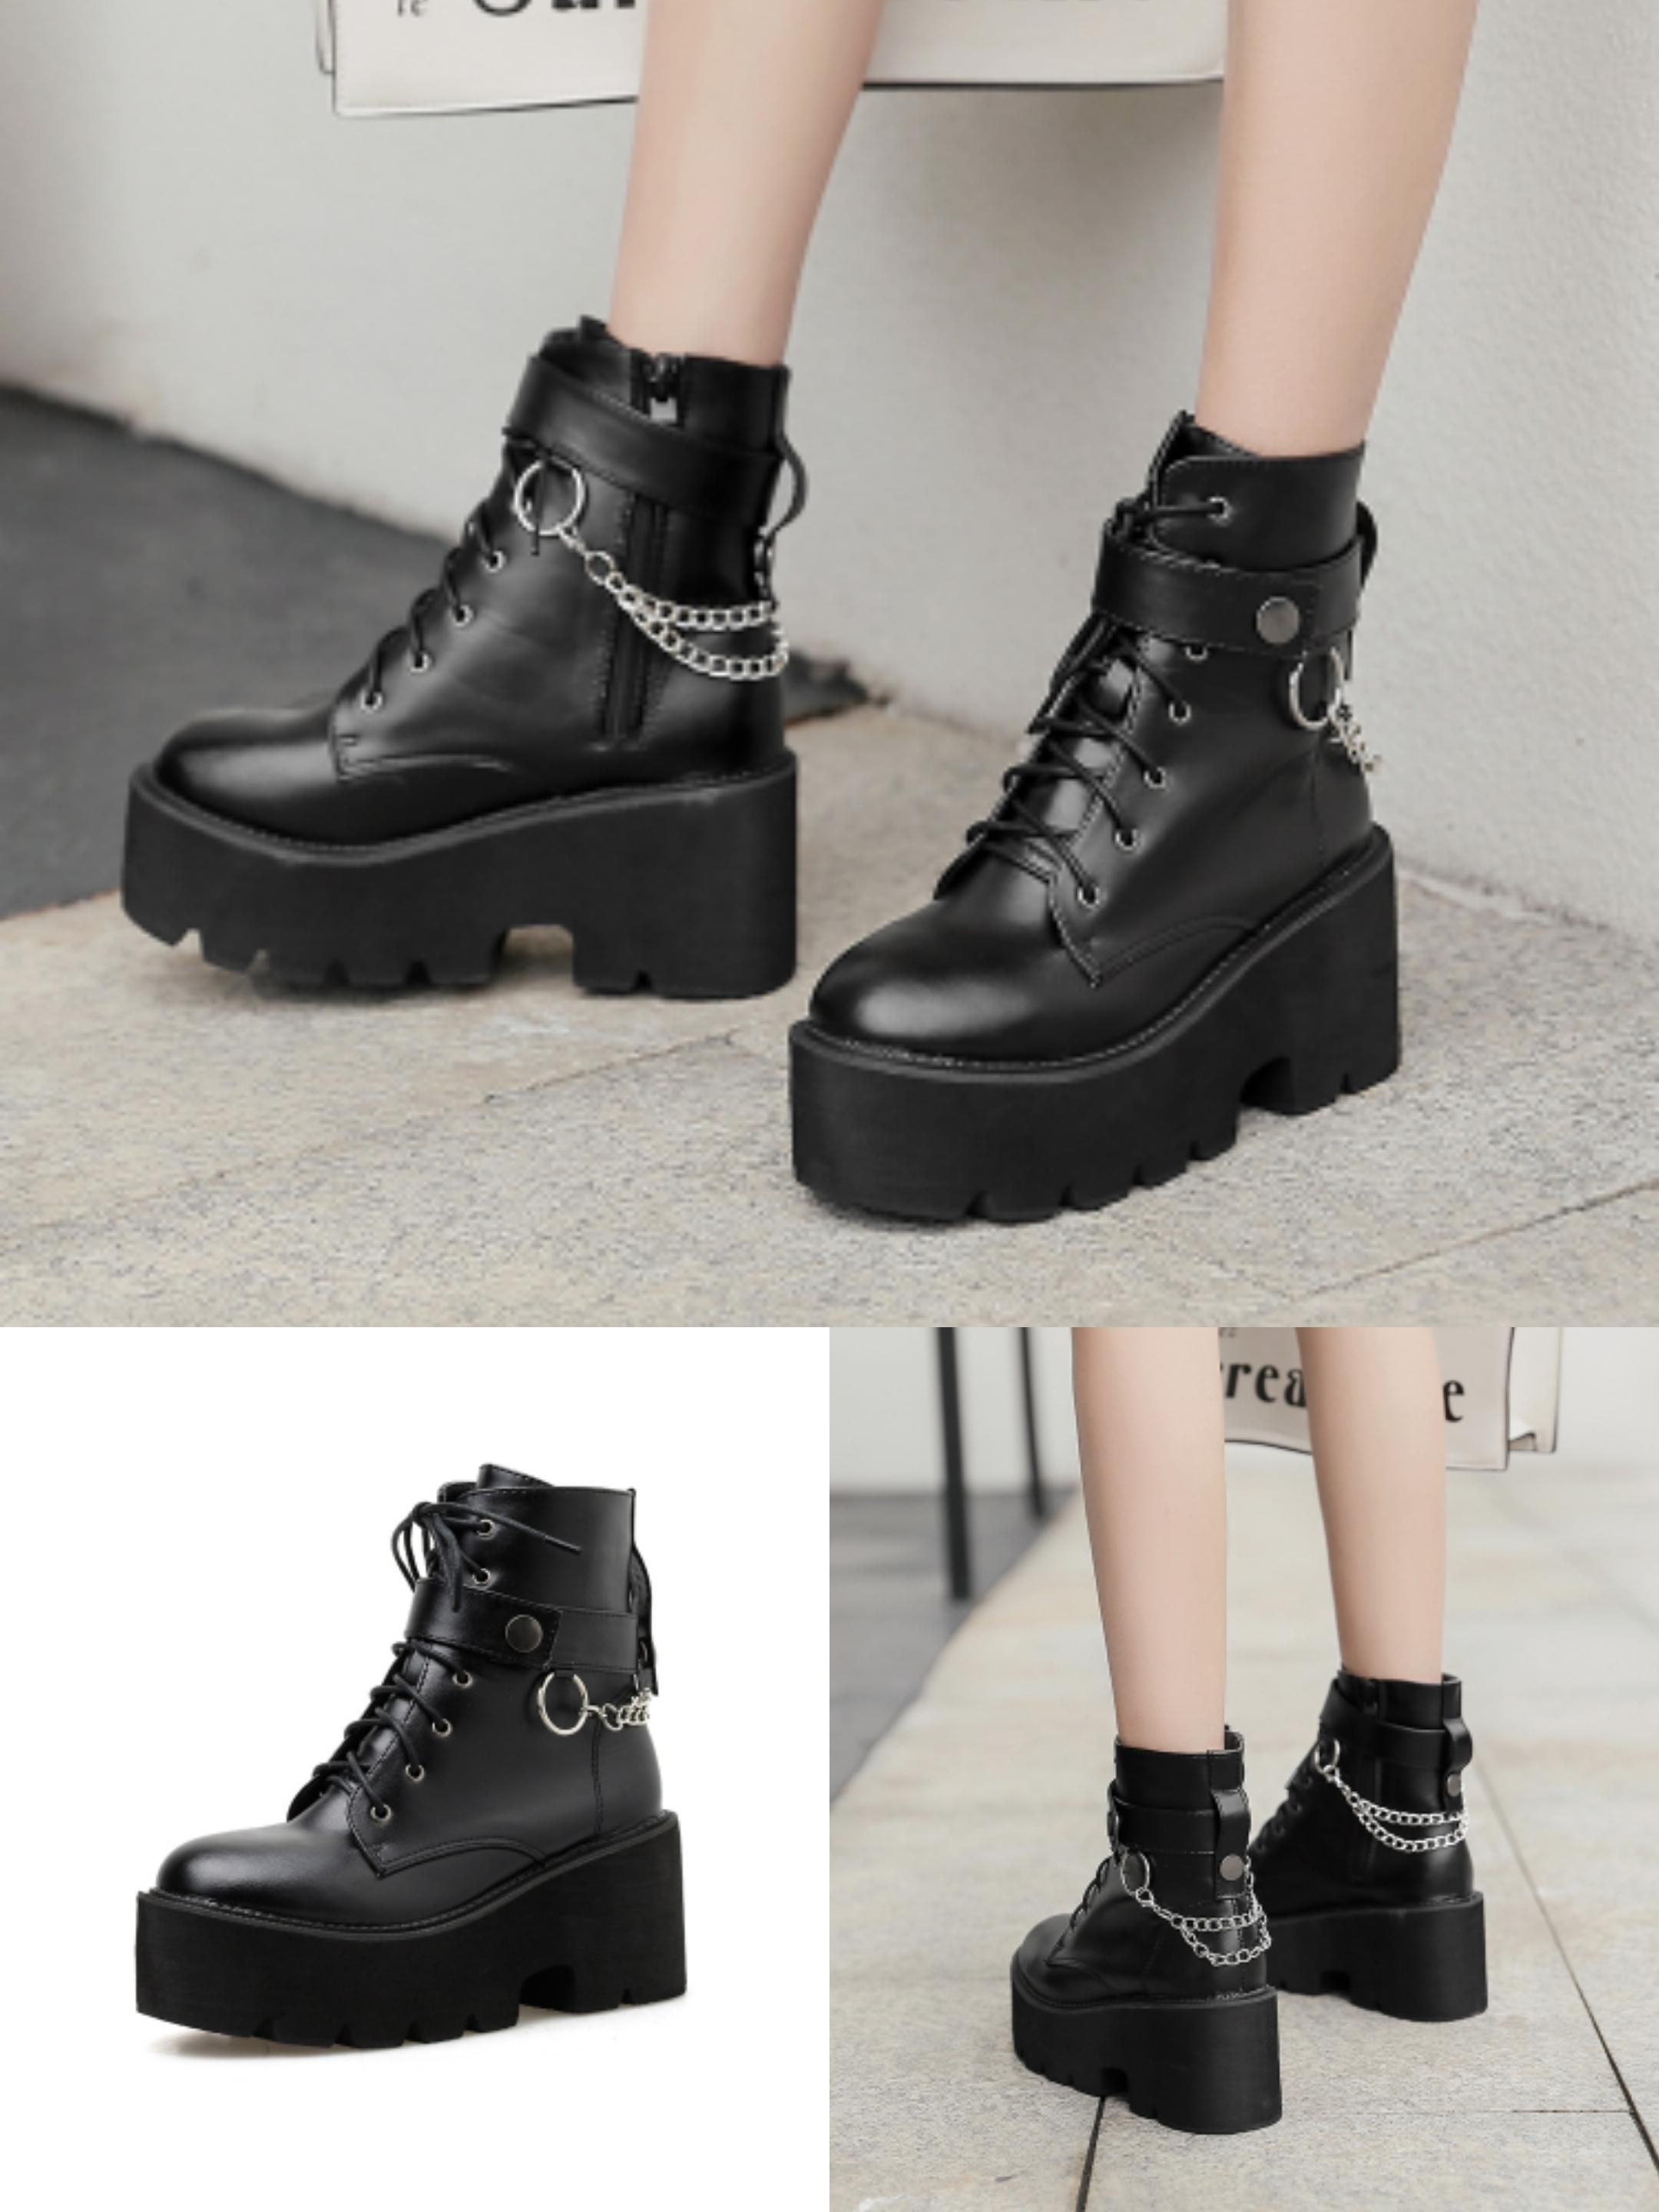 Womens Lace UP Ankle Boots Round Toe High Block Heel Punk Platform SHoes Autumn